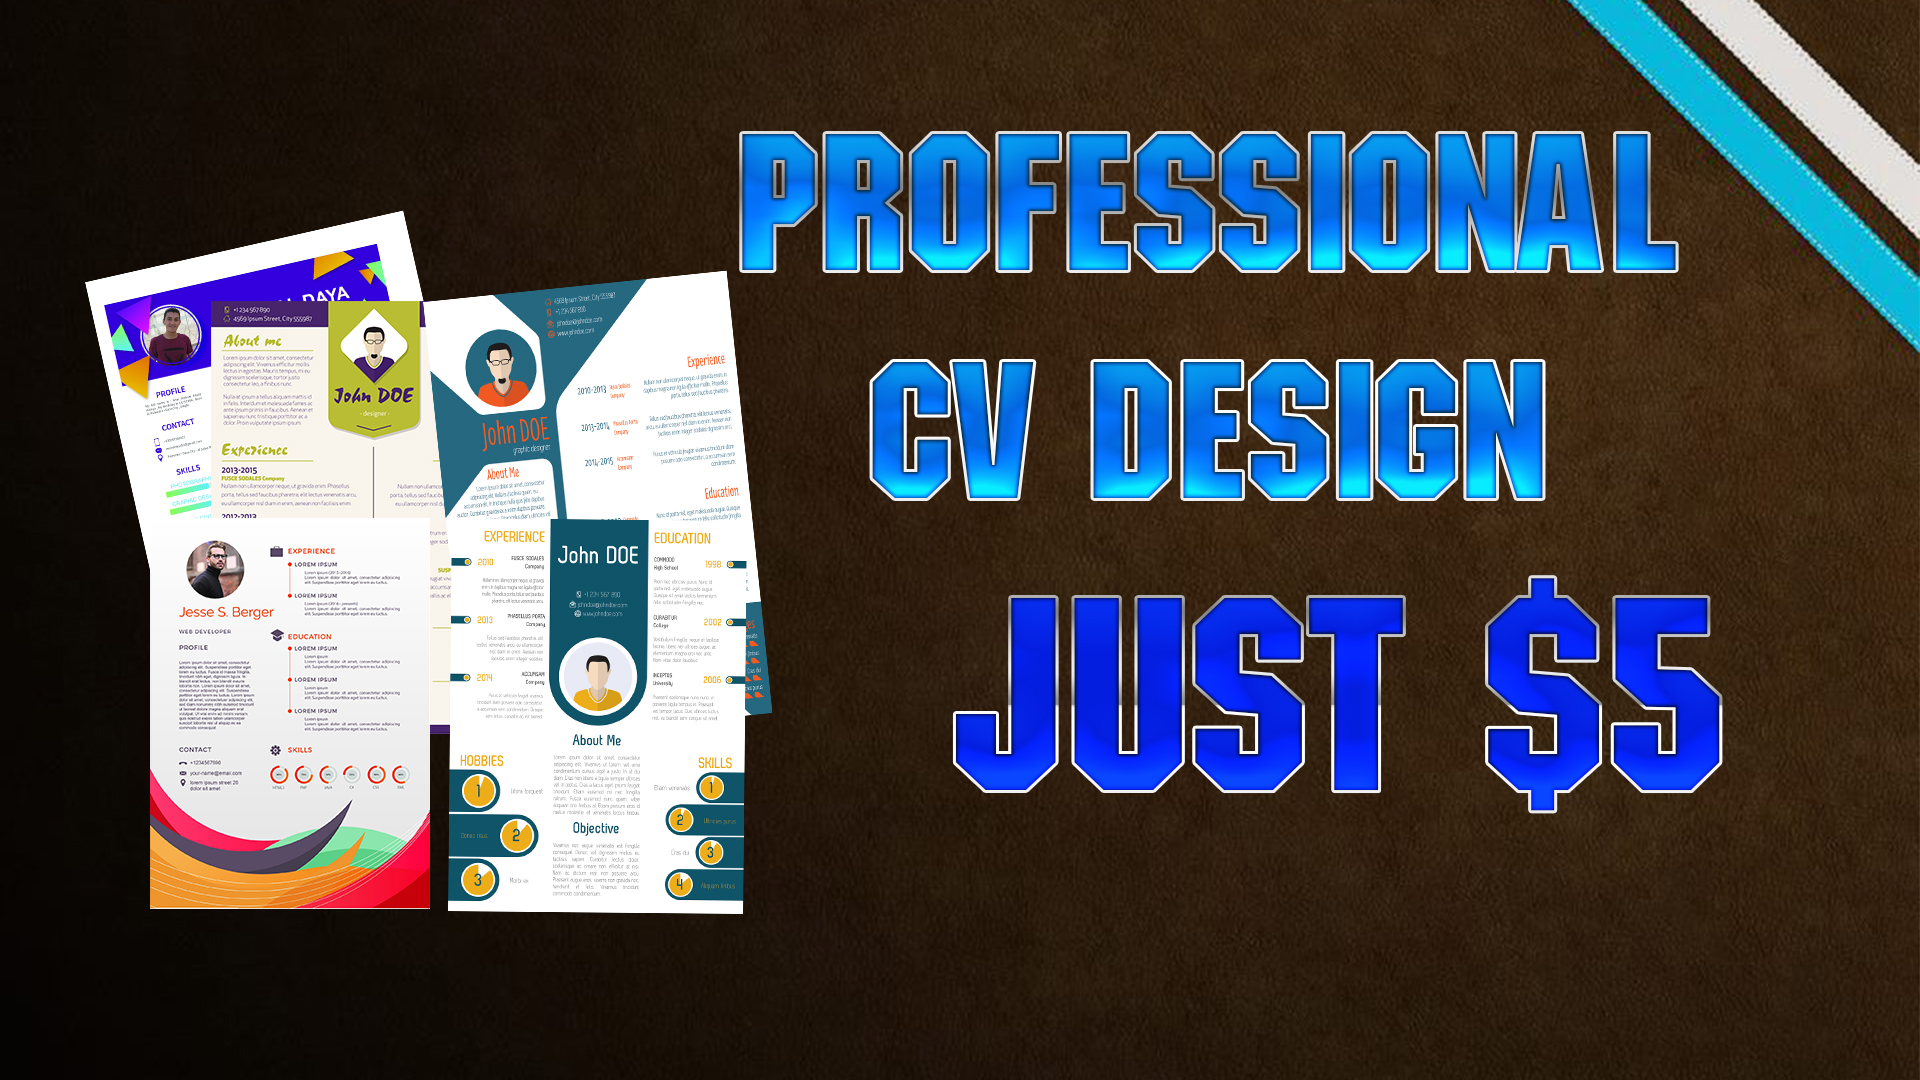 Create Professional CV Design